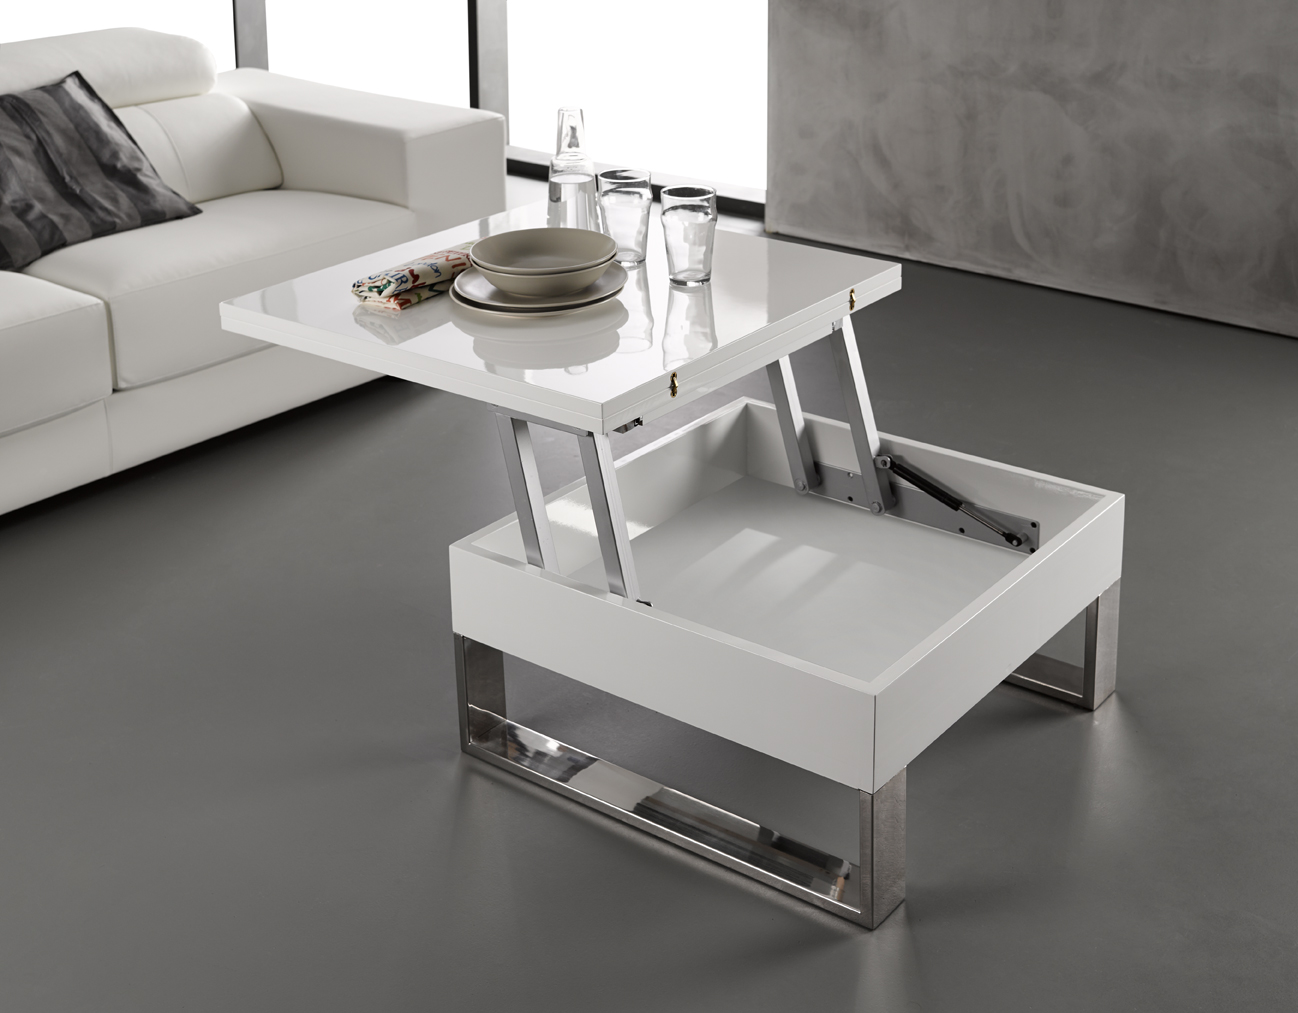 Model etable salon moderne - Table salon moderne ...